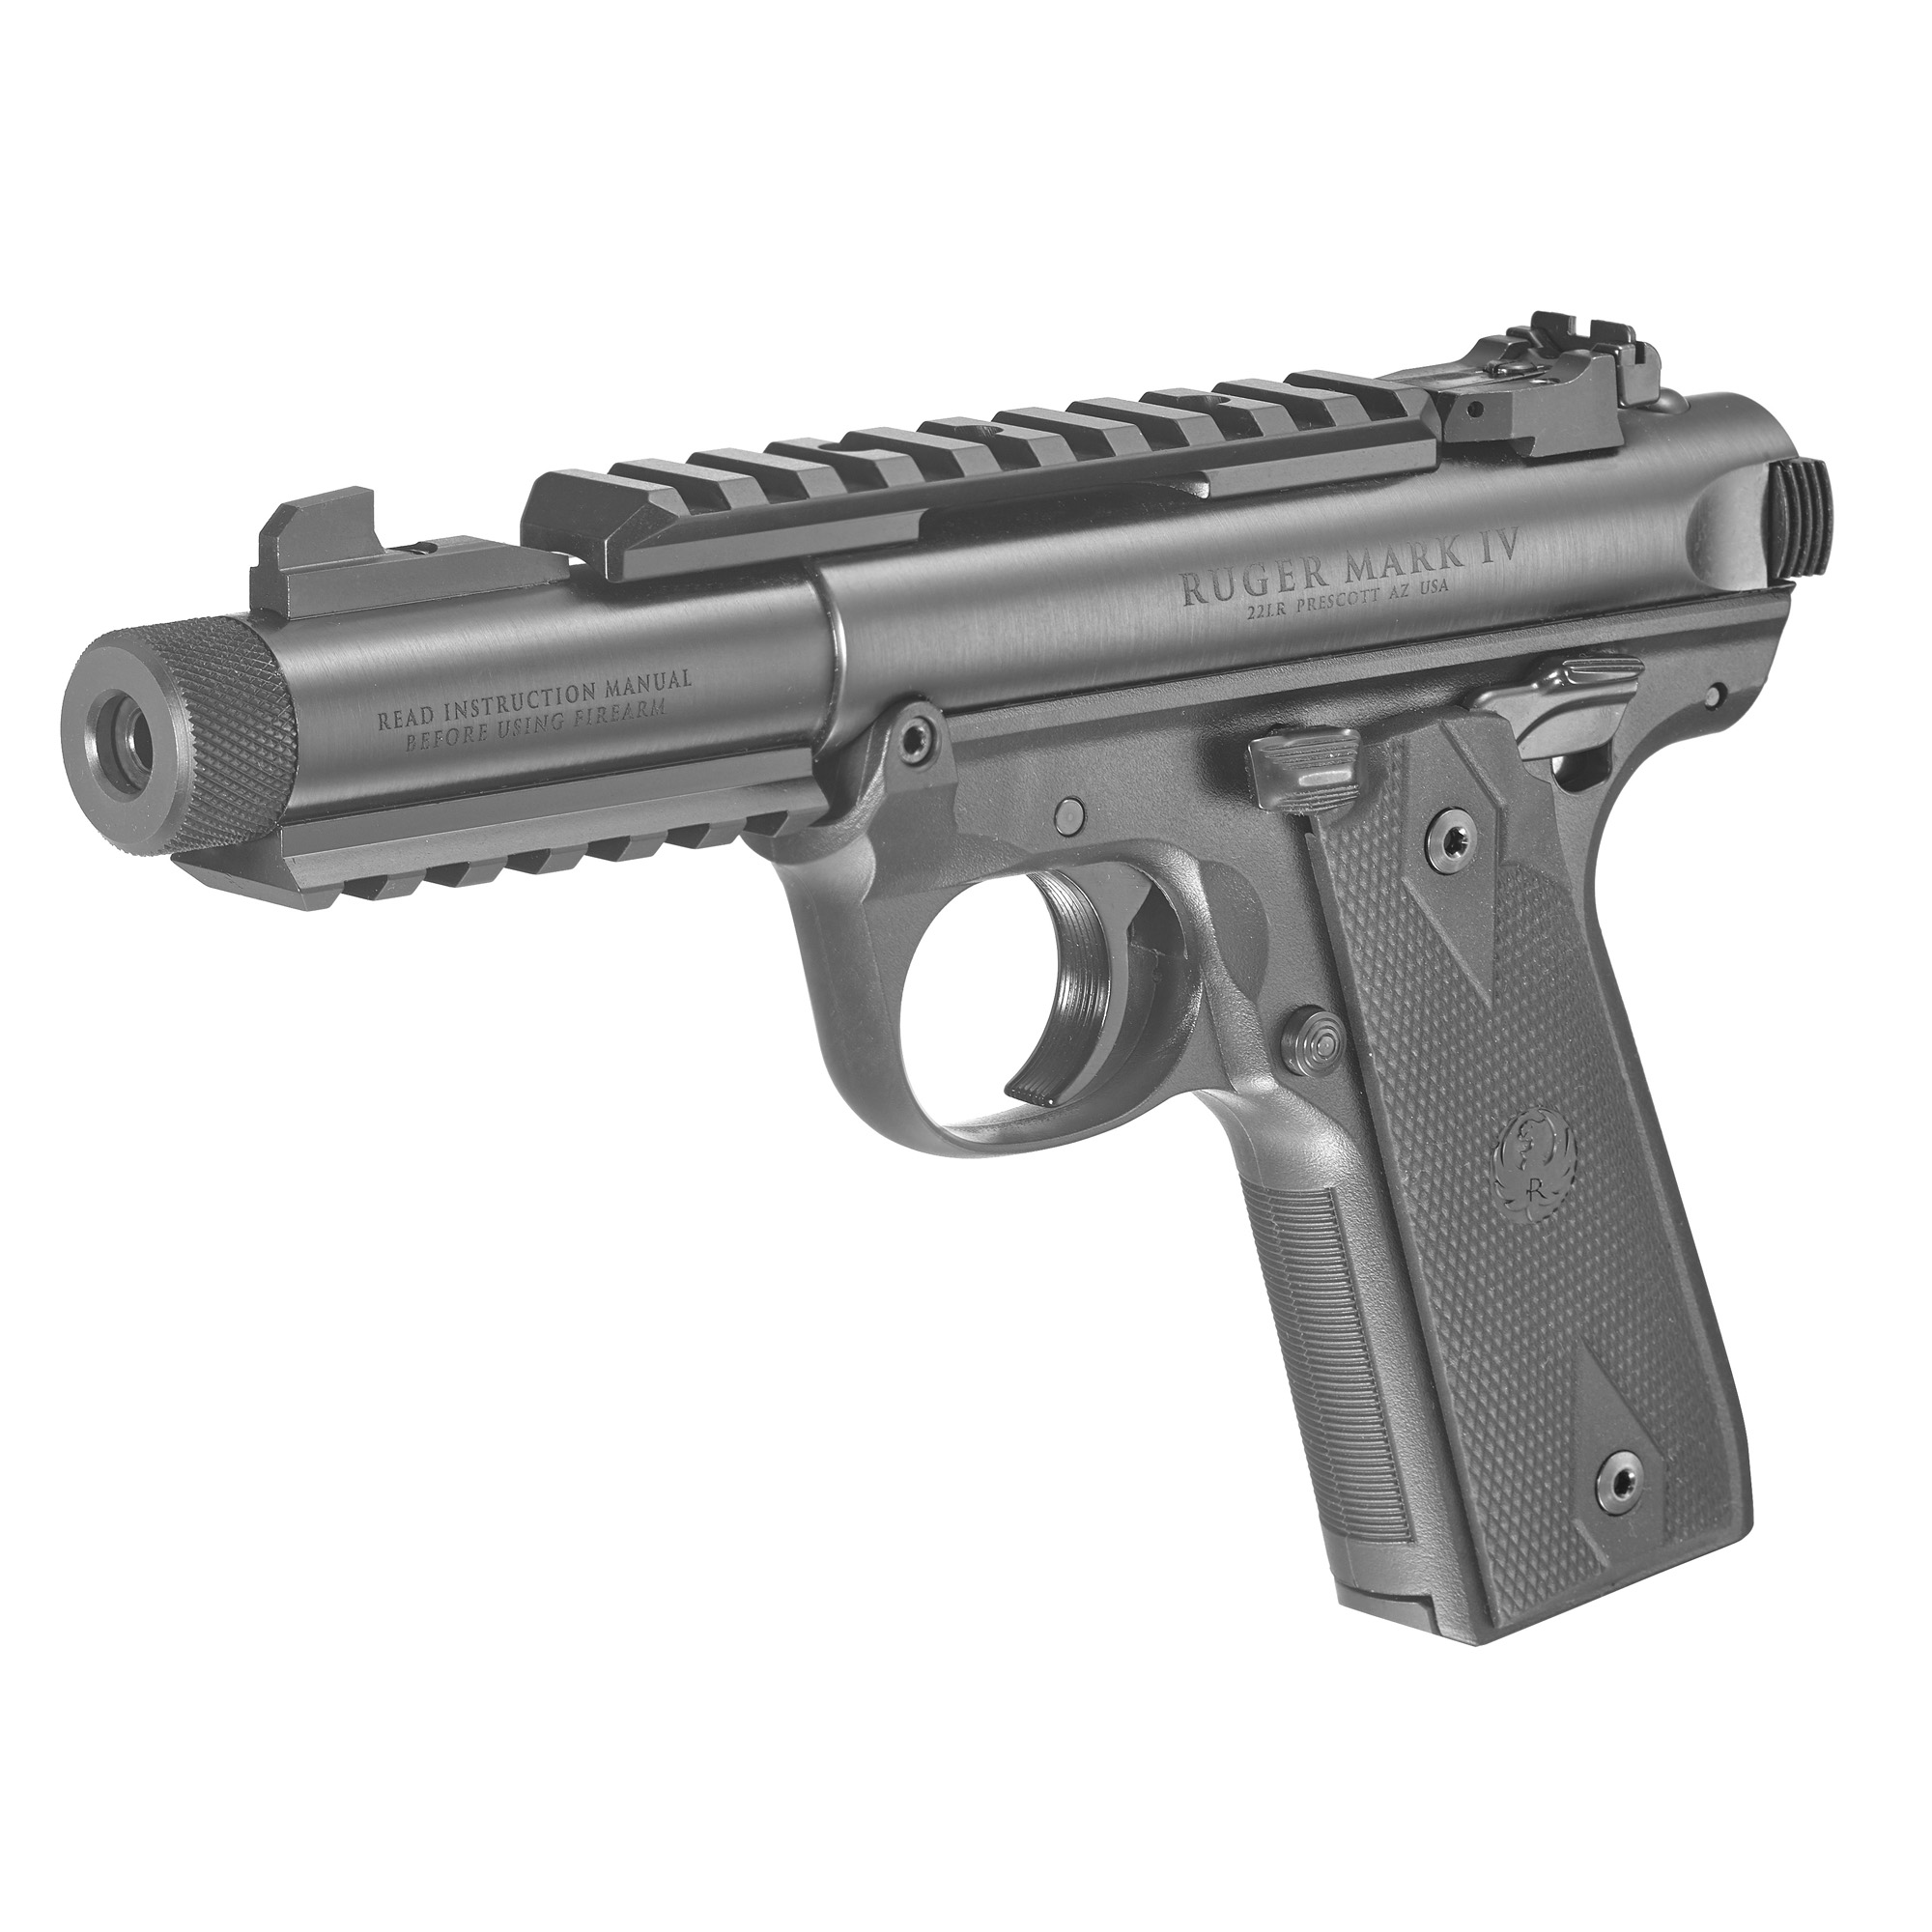 """The Ruger Mark IV Rimfire Pistols have the classic look of the Mark III with a simple"""" one-button takedown for quick and easy field stripping. A recessed button in the back of the frame allows the upper receiver to tilt up and off of the grip frame without the use of tools. The bolt simply slides out of the receiver and the barrel can be properly cleaned from chamber to muzzle. The MKIV includes other significant improvements such as a one-piece grip frame that is precision CNC-machined from a solid piece of aluminum alloy; an ambidextrous manual safety and a redesigned bolt stop for more ergonomic operation. The magazine drops free on release for faster reloads and a redesigned magazine disconnect safety prevents discharge when the magazine has been removed. Internal improvements include changes to the hammer"""" sear"""" bolt and firing pin for smoother"""" more reliable feeding. Specific features vary by model"""" but the legendary"""" one-piece barreled receiver and internal cylindrical bolt construction remain the same. The robust design ensures permanent sight-to-barrel alignment and higher accuracy potential than conventional moving-slide designs. Includes two 10-round magazines."""